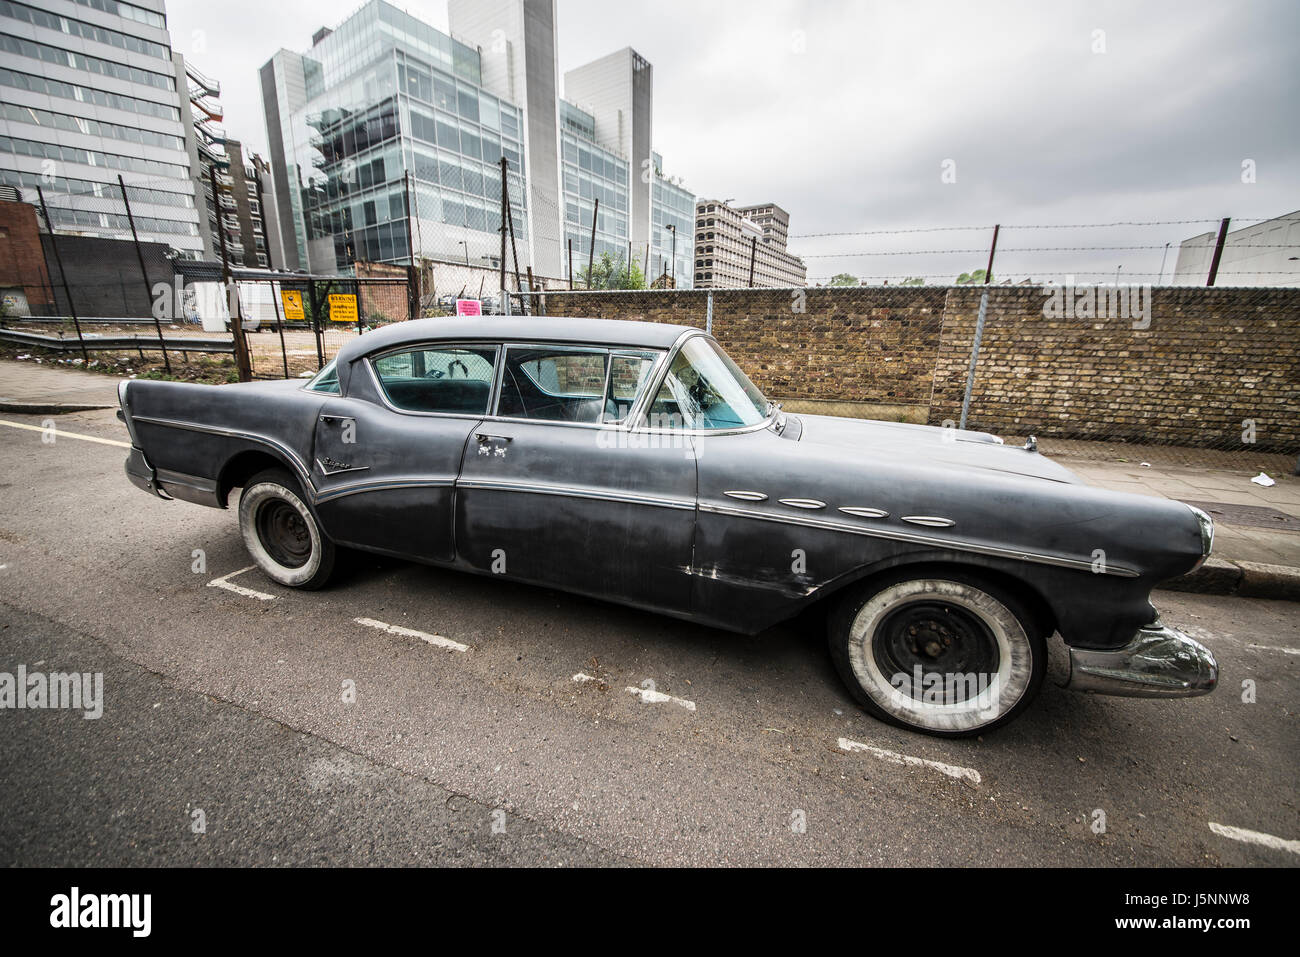 Aging 1950s (1956 ?) Buick Super Riviera in a London side street. With whitewall tyres / tires. Decay. Space for - Stock Image